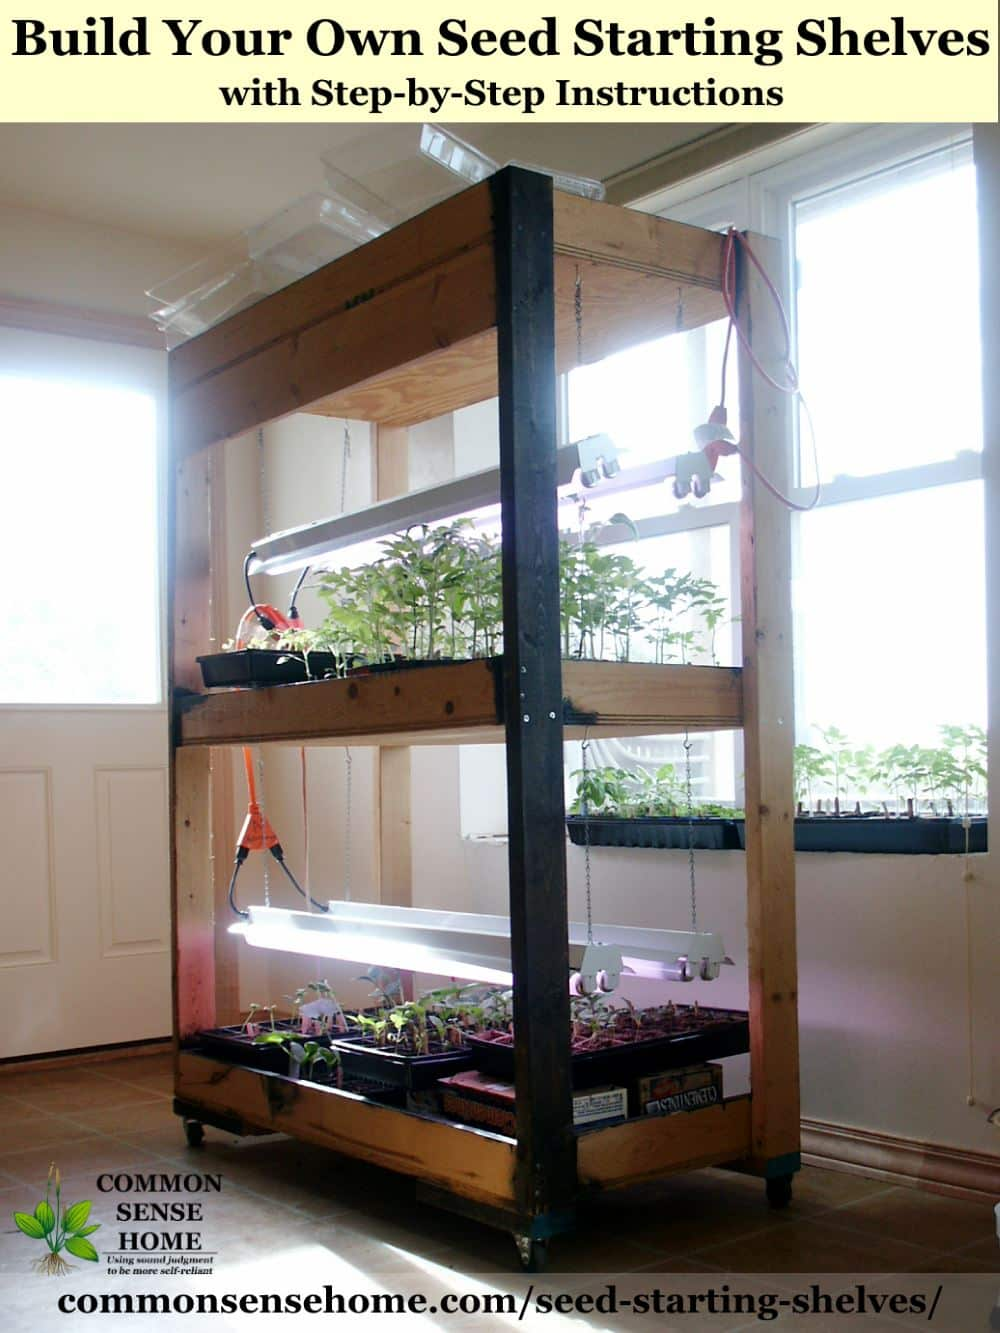 Seed starting shelves